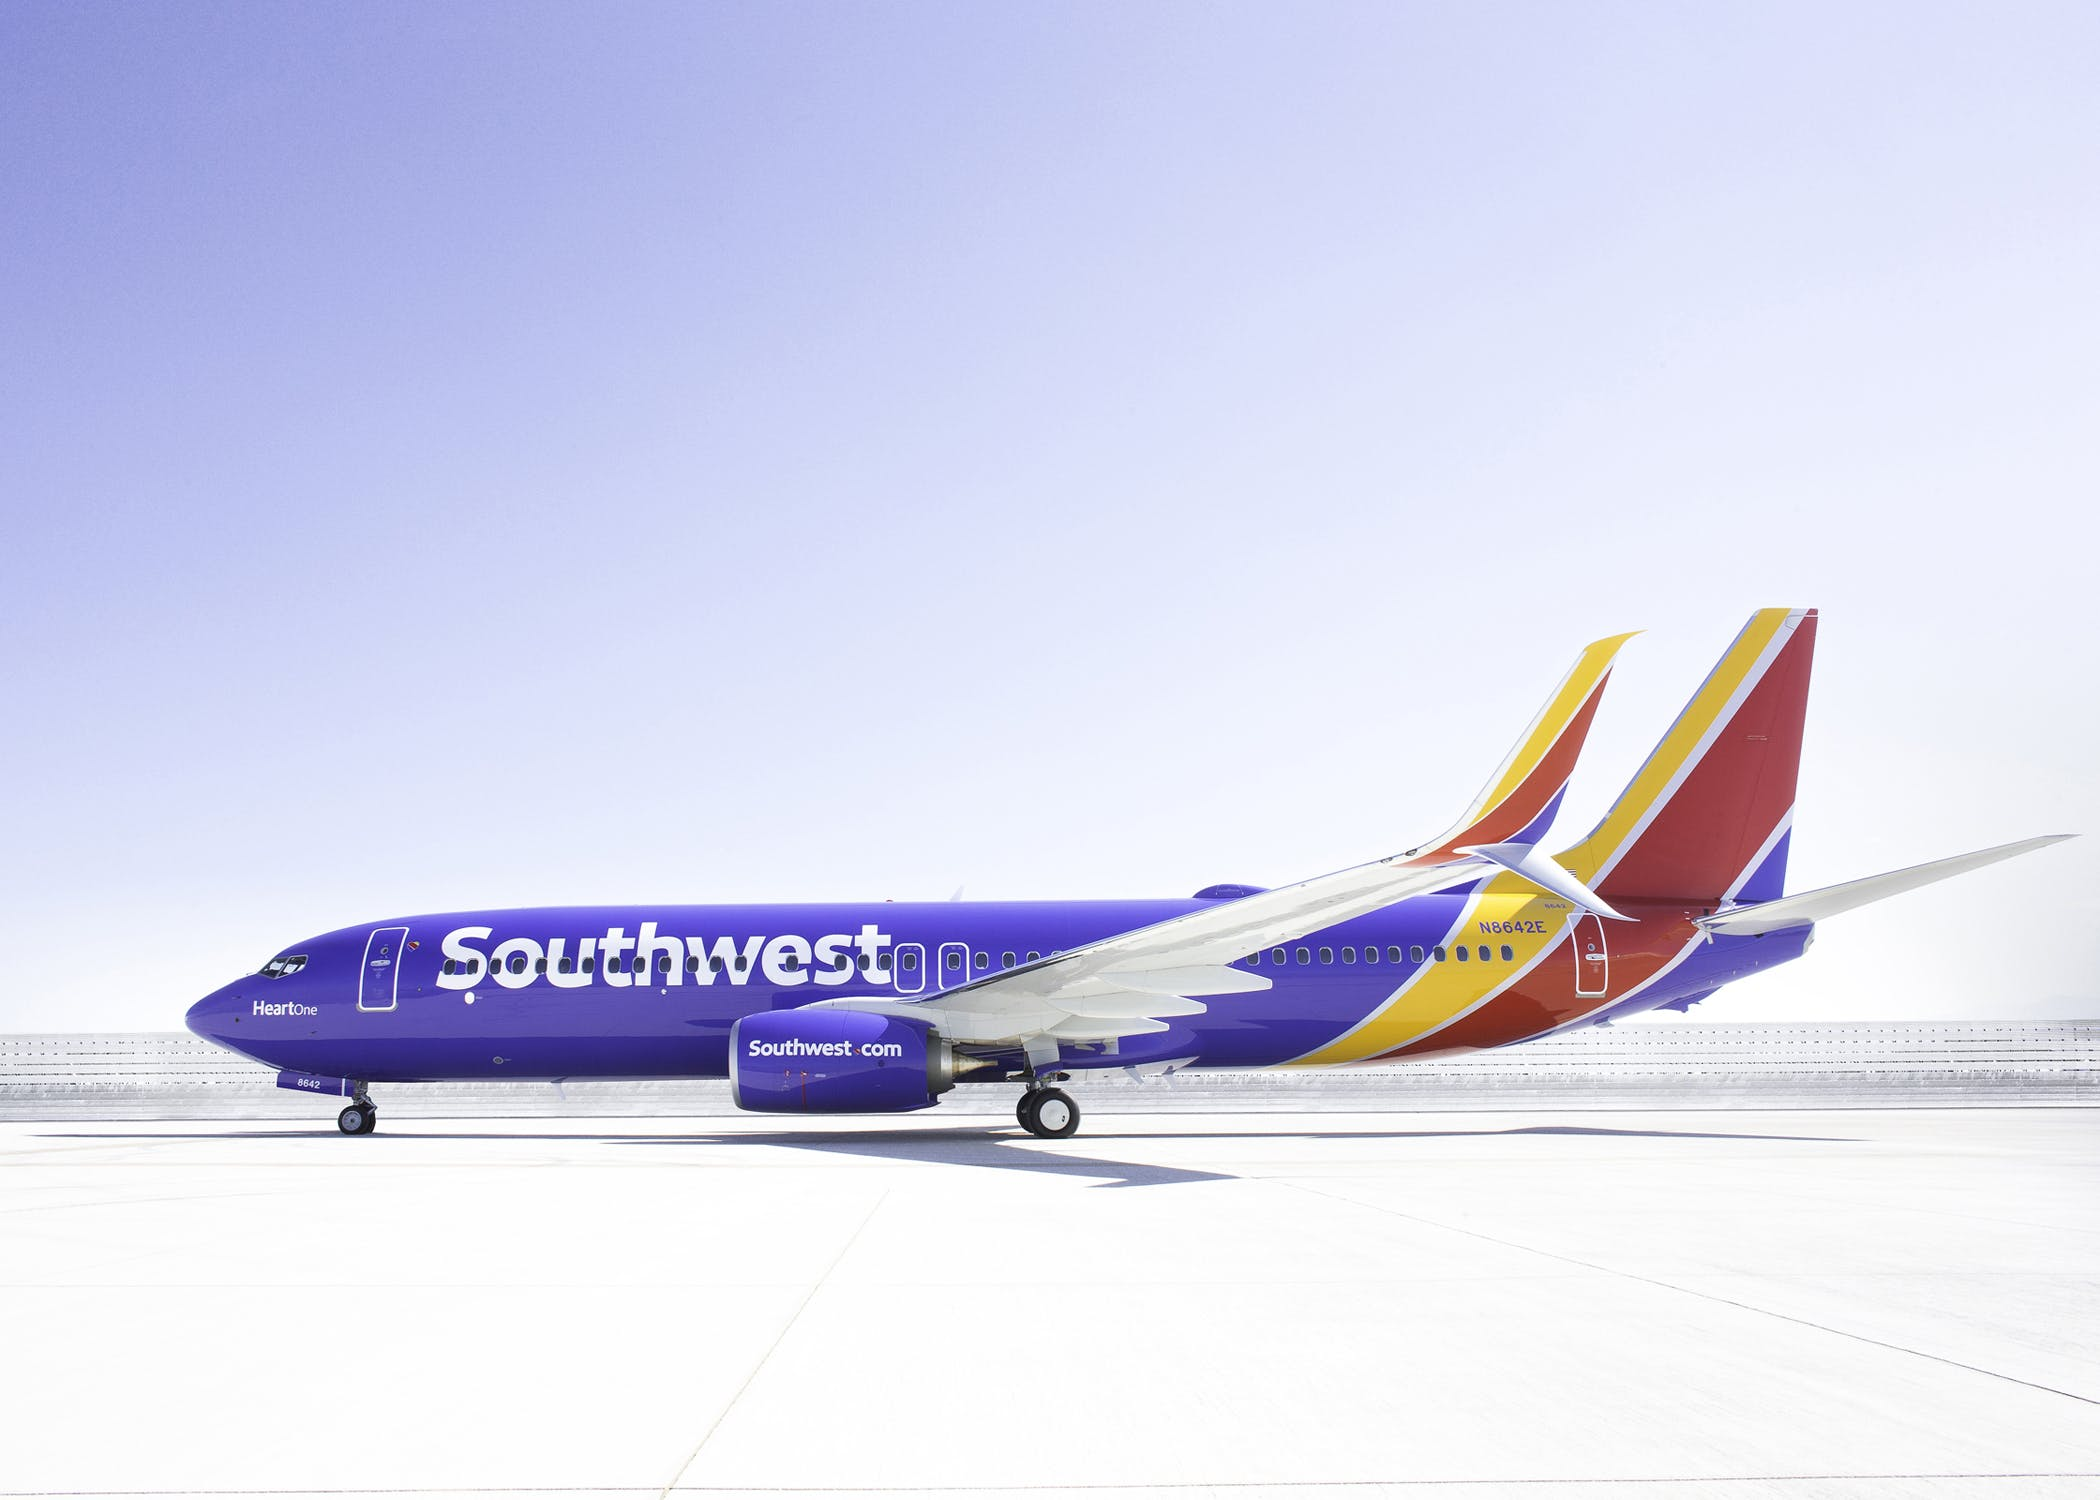 swa case study Access to case studies expires six months after purchase date publication date: january 01, 1995 in 1994, both united airlines and continental airlines launched low-cost airlines-within-an-airline to compete with southwest airlines.